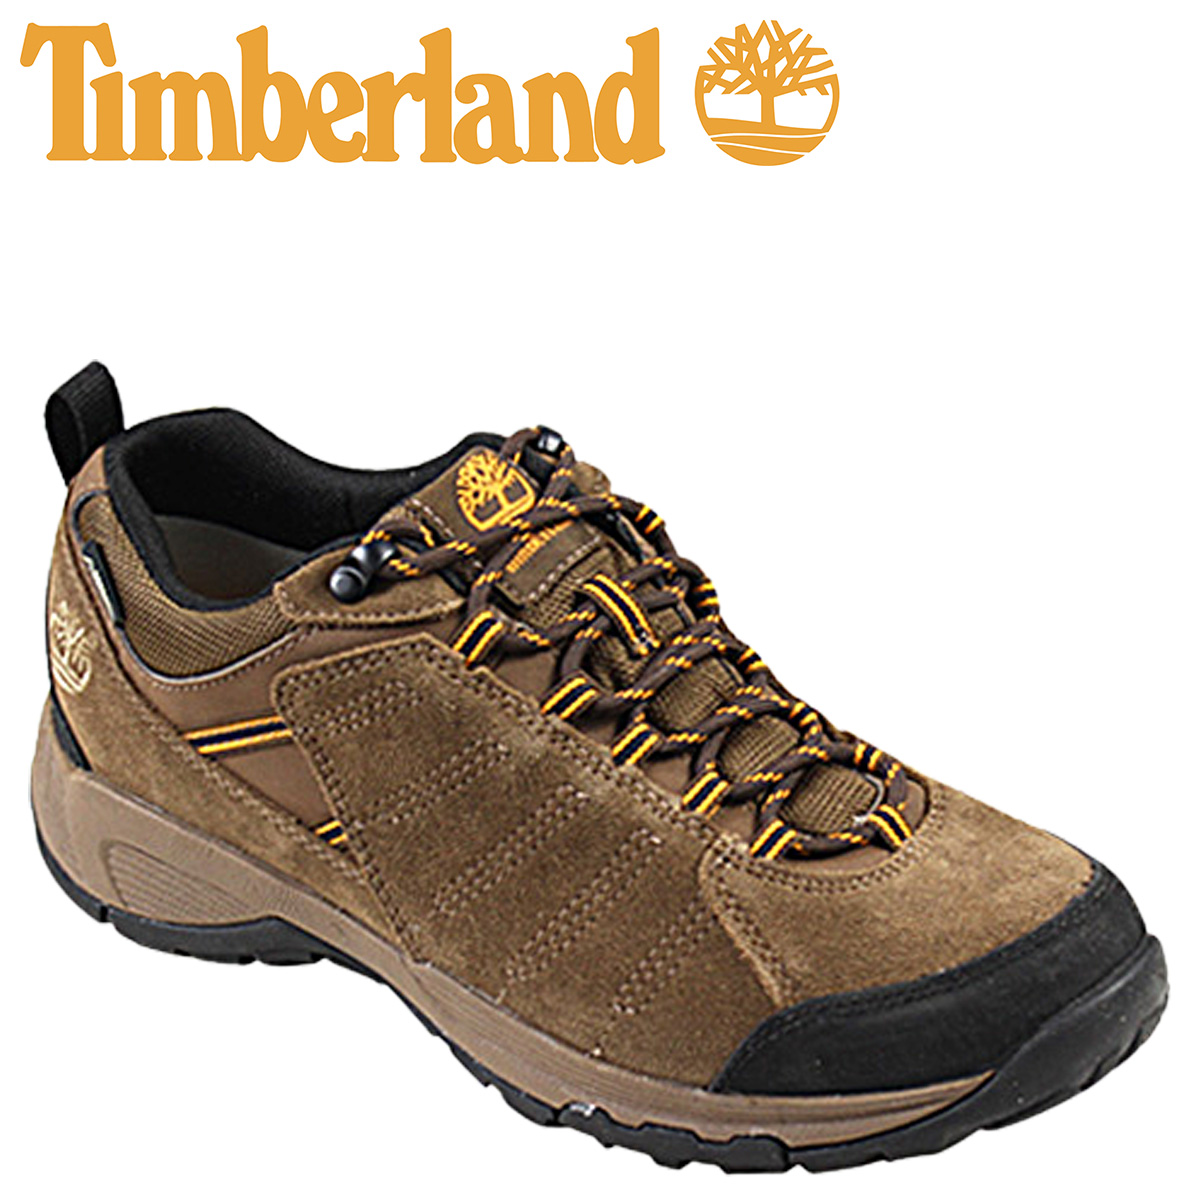 99f520c8f4d Point 2 x Timberland Timberland Chilton low Gore-Tex hiking shoe TILTON LOW  GORE-TEX HIKING SHOES mens 9741R Brown [3 / 24 new in stock] [regular] ...